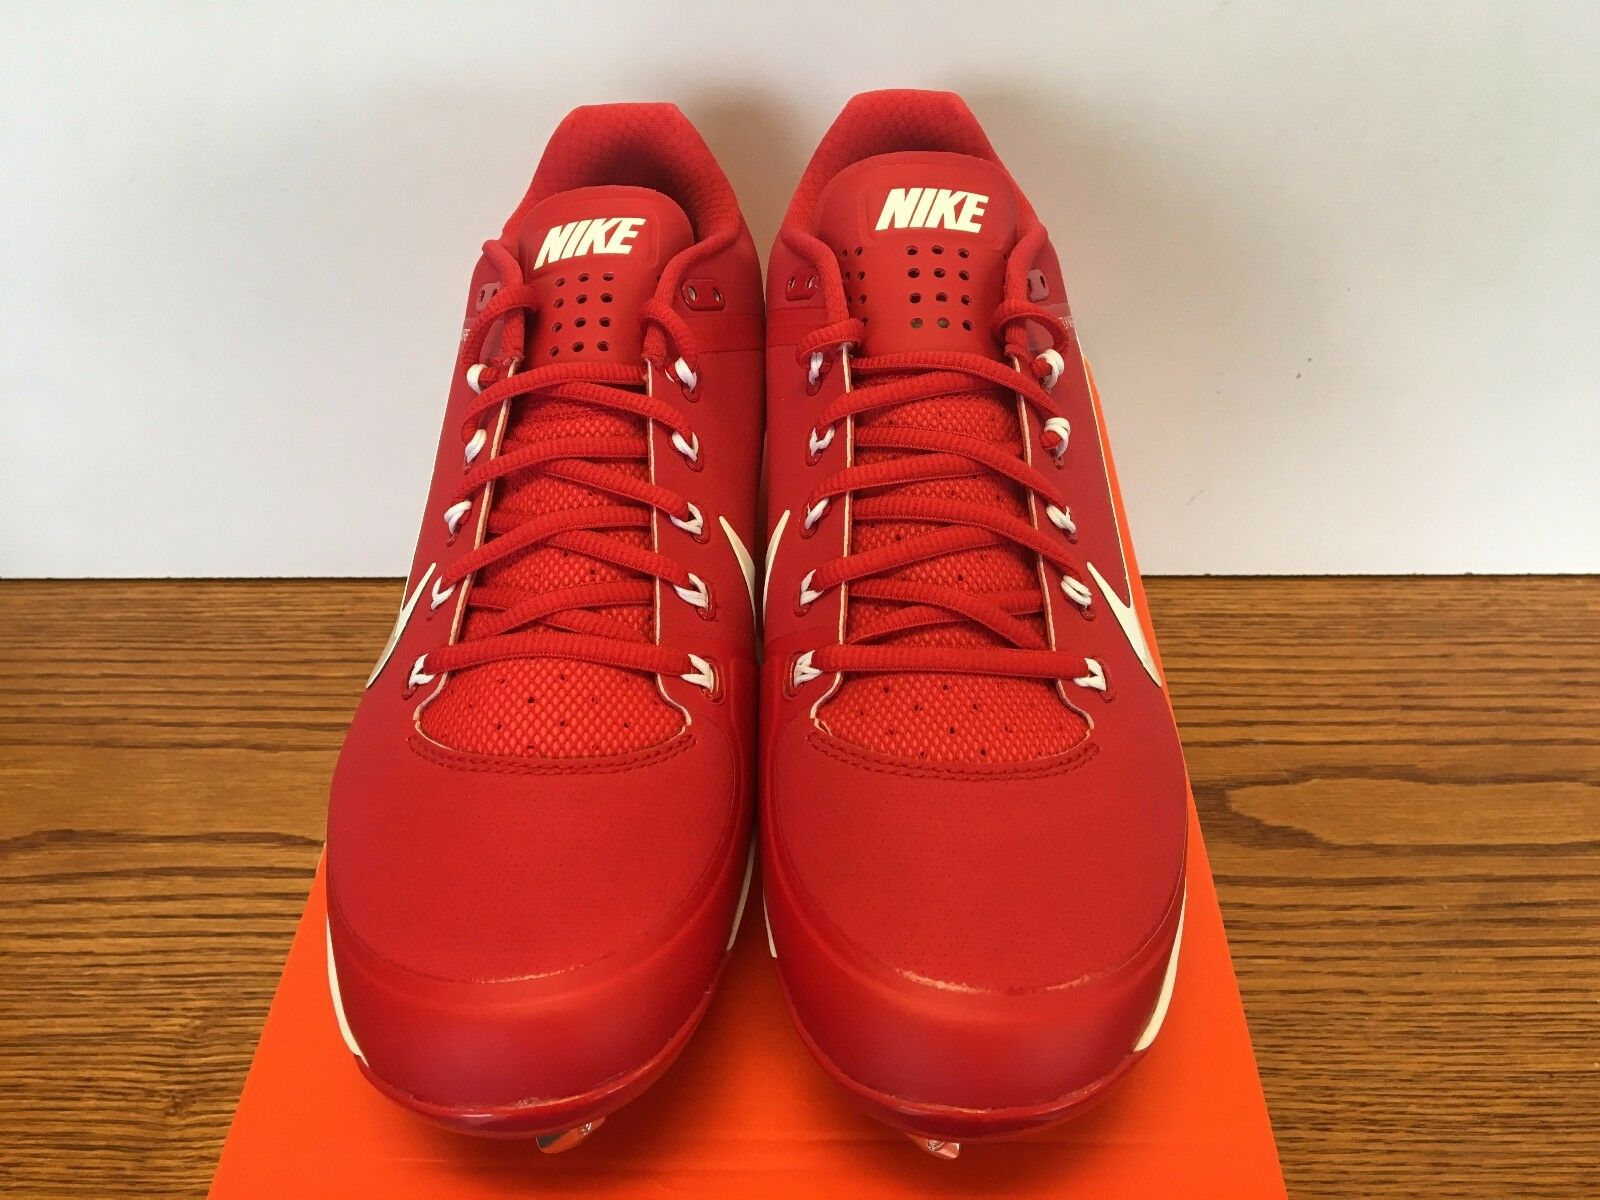 NIKE AIR CLIPPER '17 METAL BASEBALL CLEATS RED/WHITE MENS SIZE 12 NIB NEW!